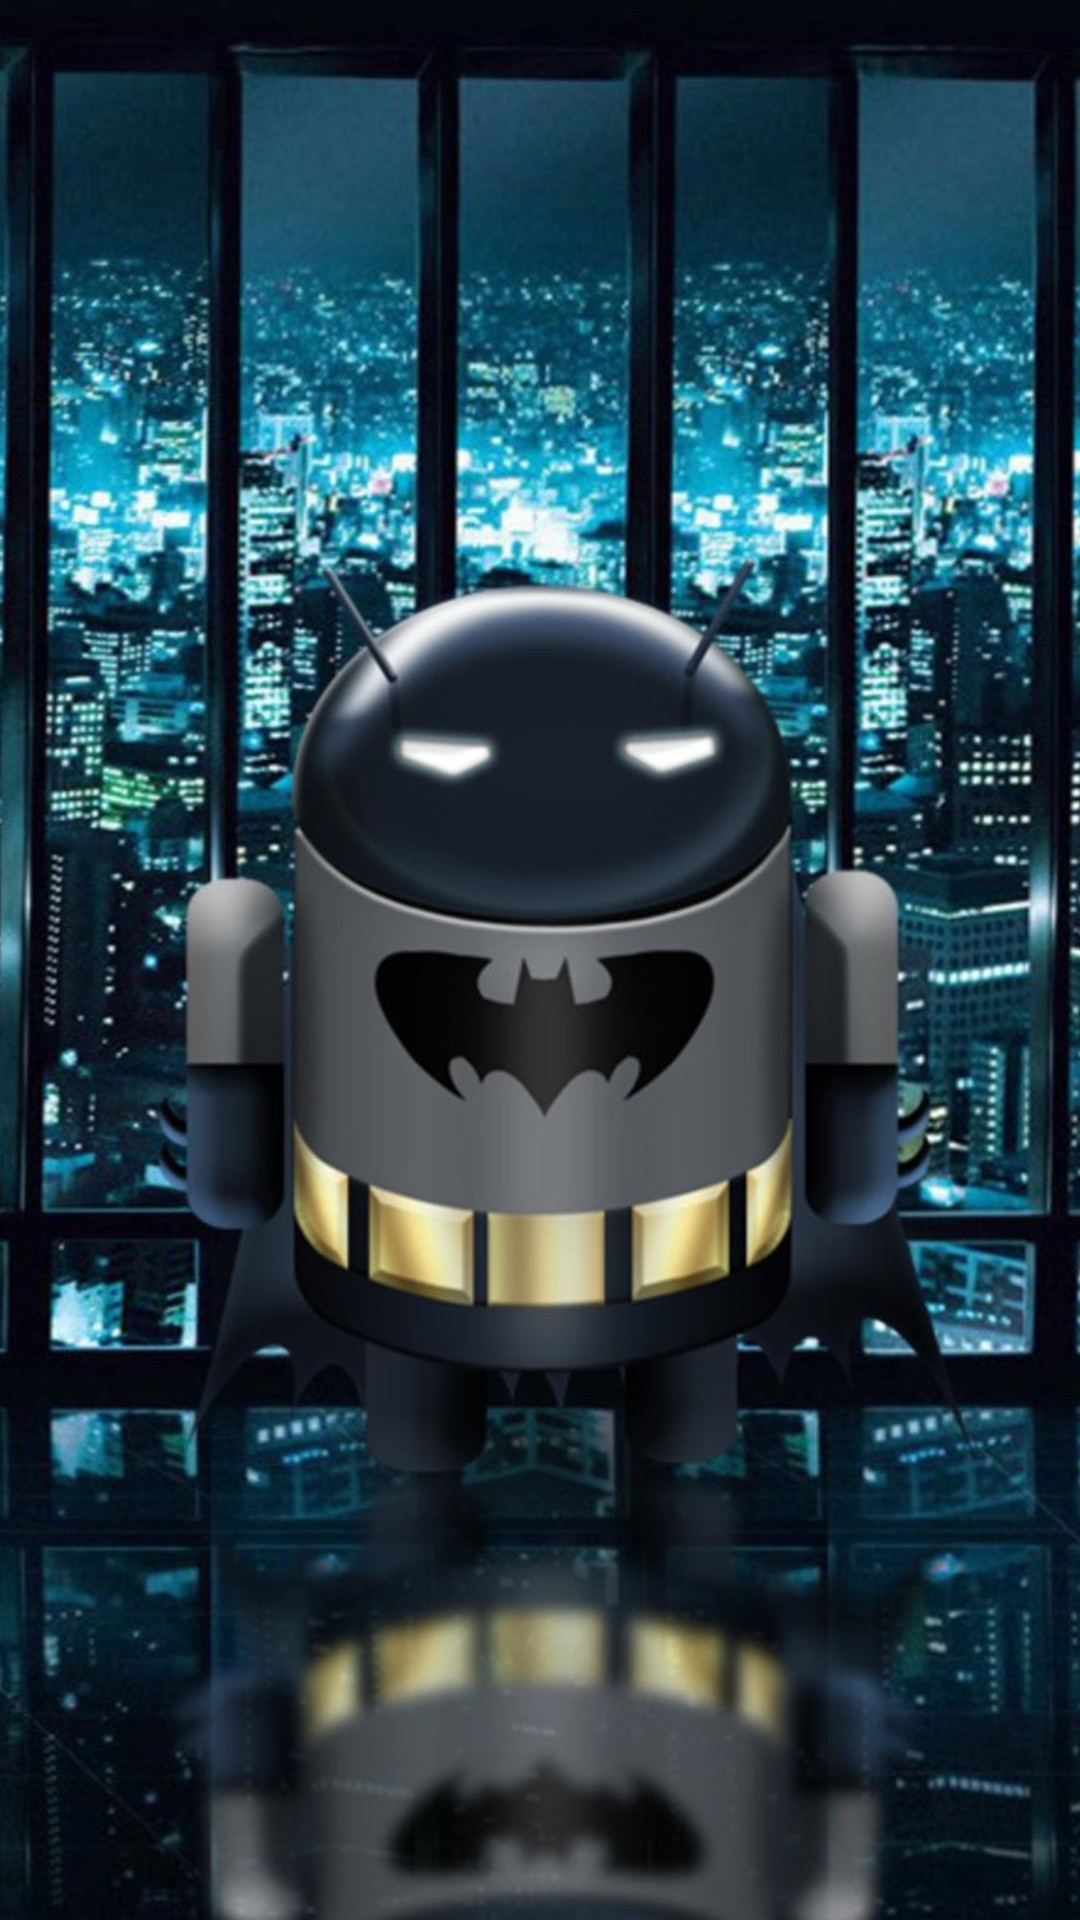 1080x1920 Android BatAndroid Smartphone Wallpapers HD